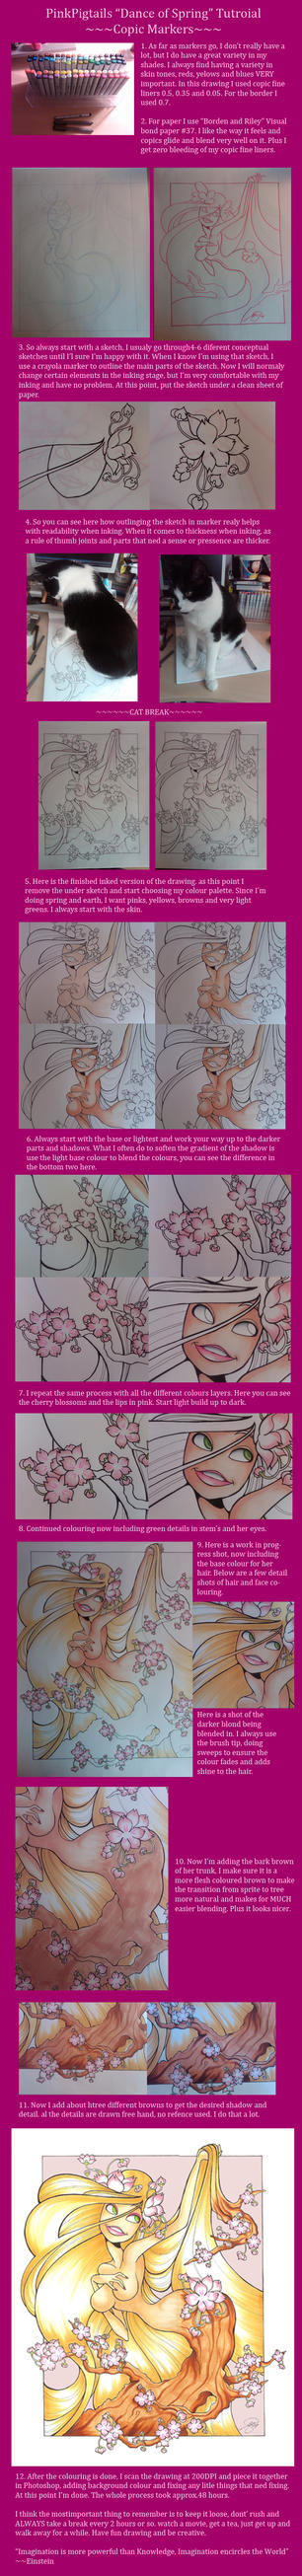 """Dance of Spring"" Tutorial by PinkPigtails"